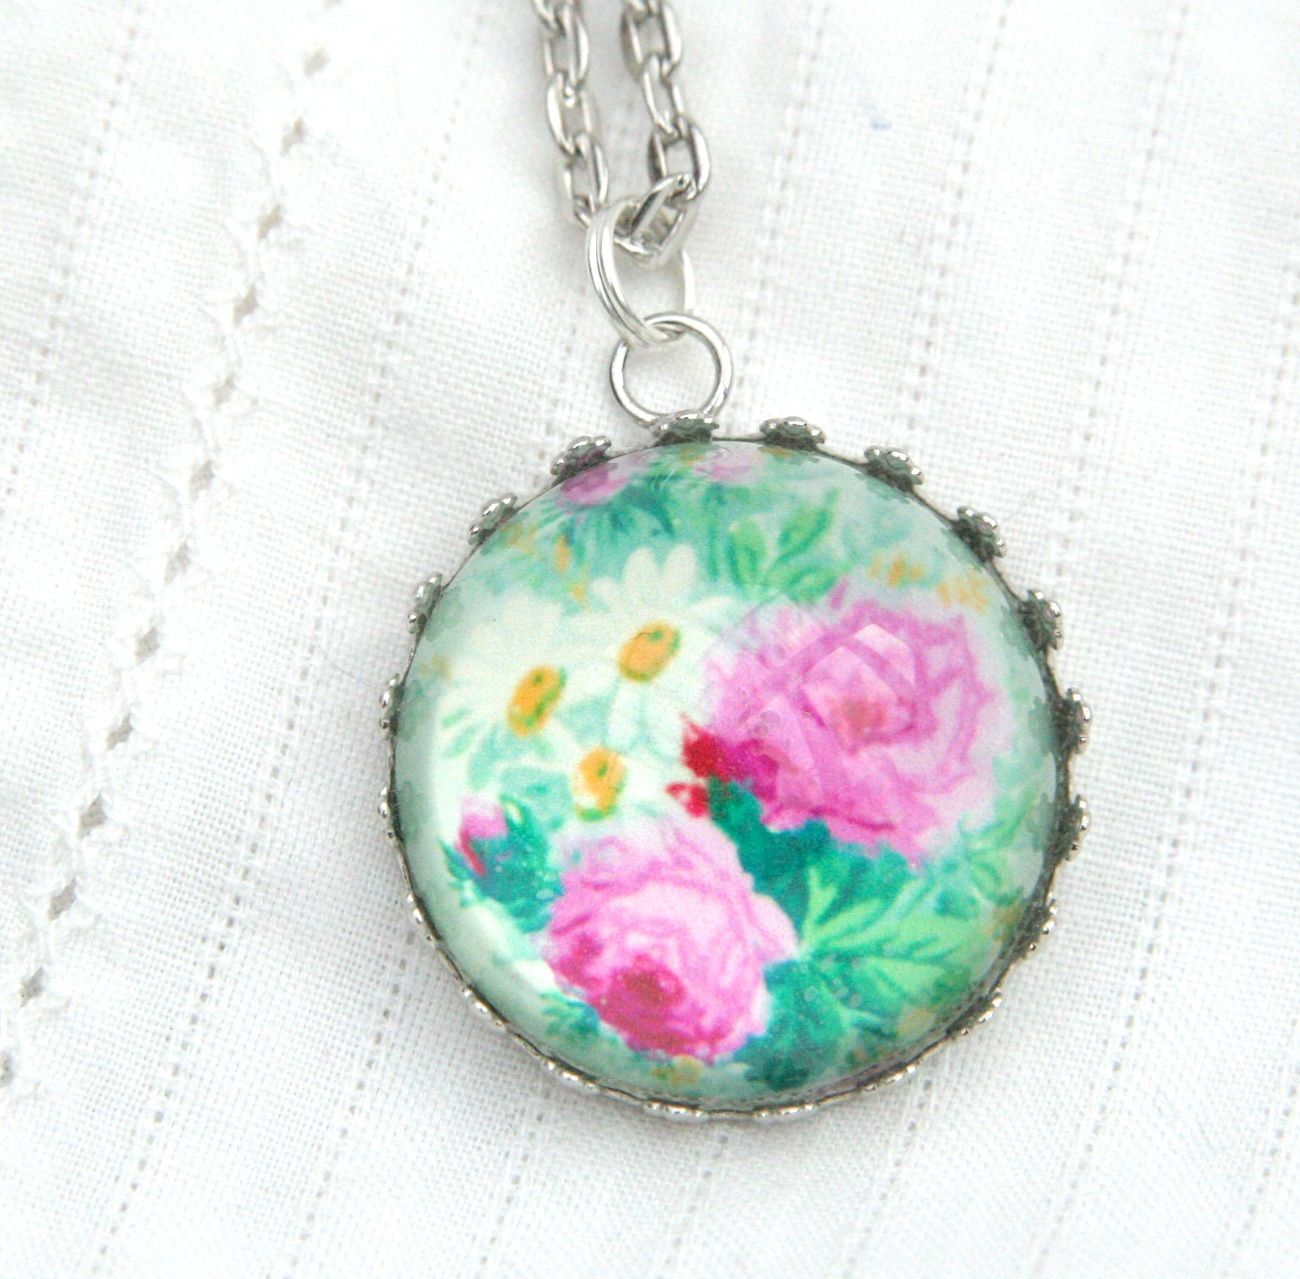 Victorian 'Arsenical wallpaper' floral deep glass pendant